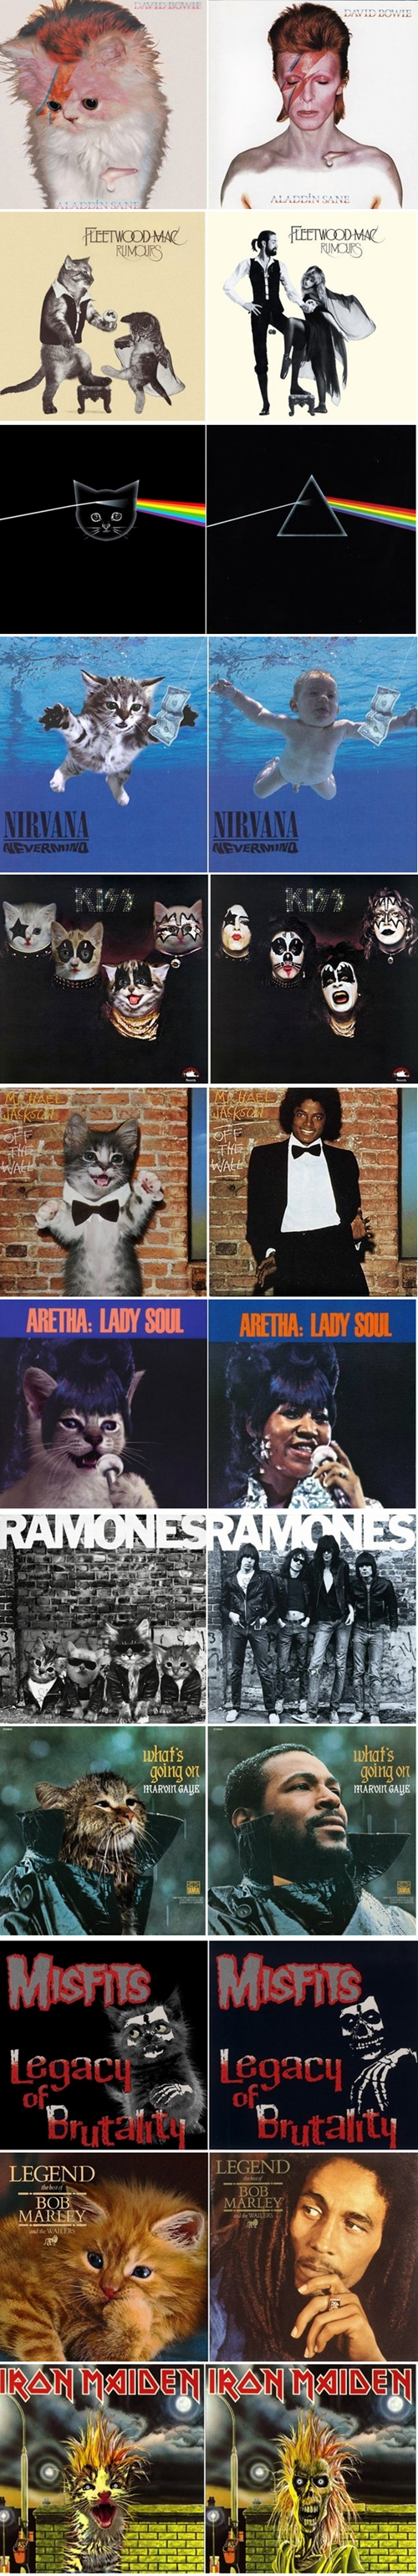 parodies,Cats,album covers,Music FAILS,g rated